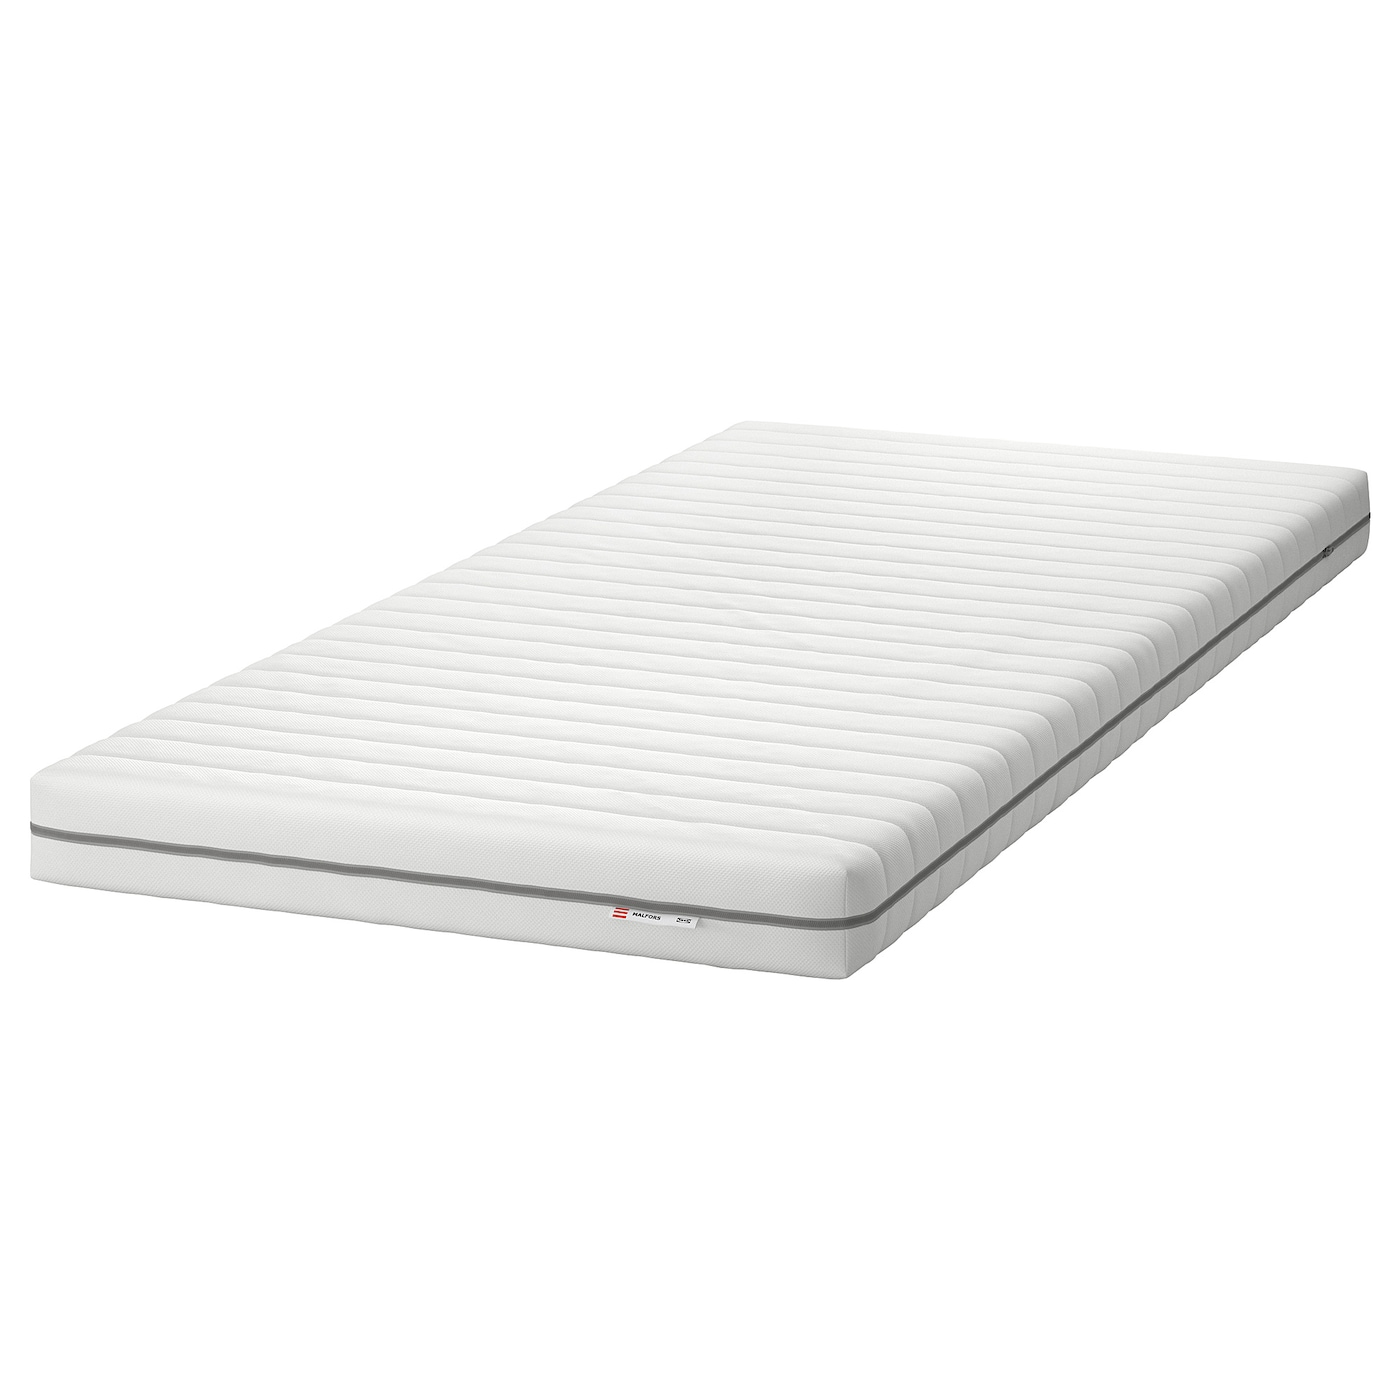 malfors matelas en mousse ferme blanc 90 x 200 cm ikea. Black Bedroom Furniture Sets. Home Design Ideas